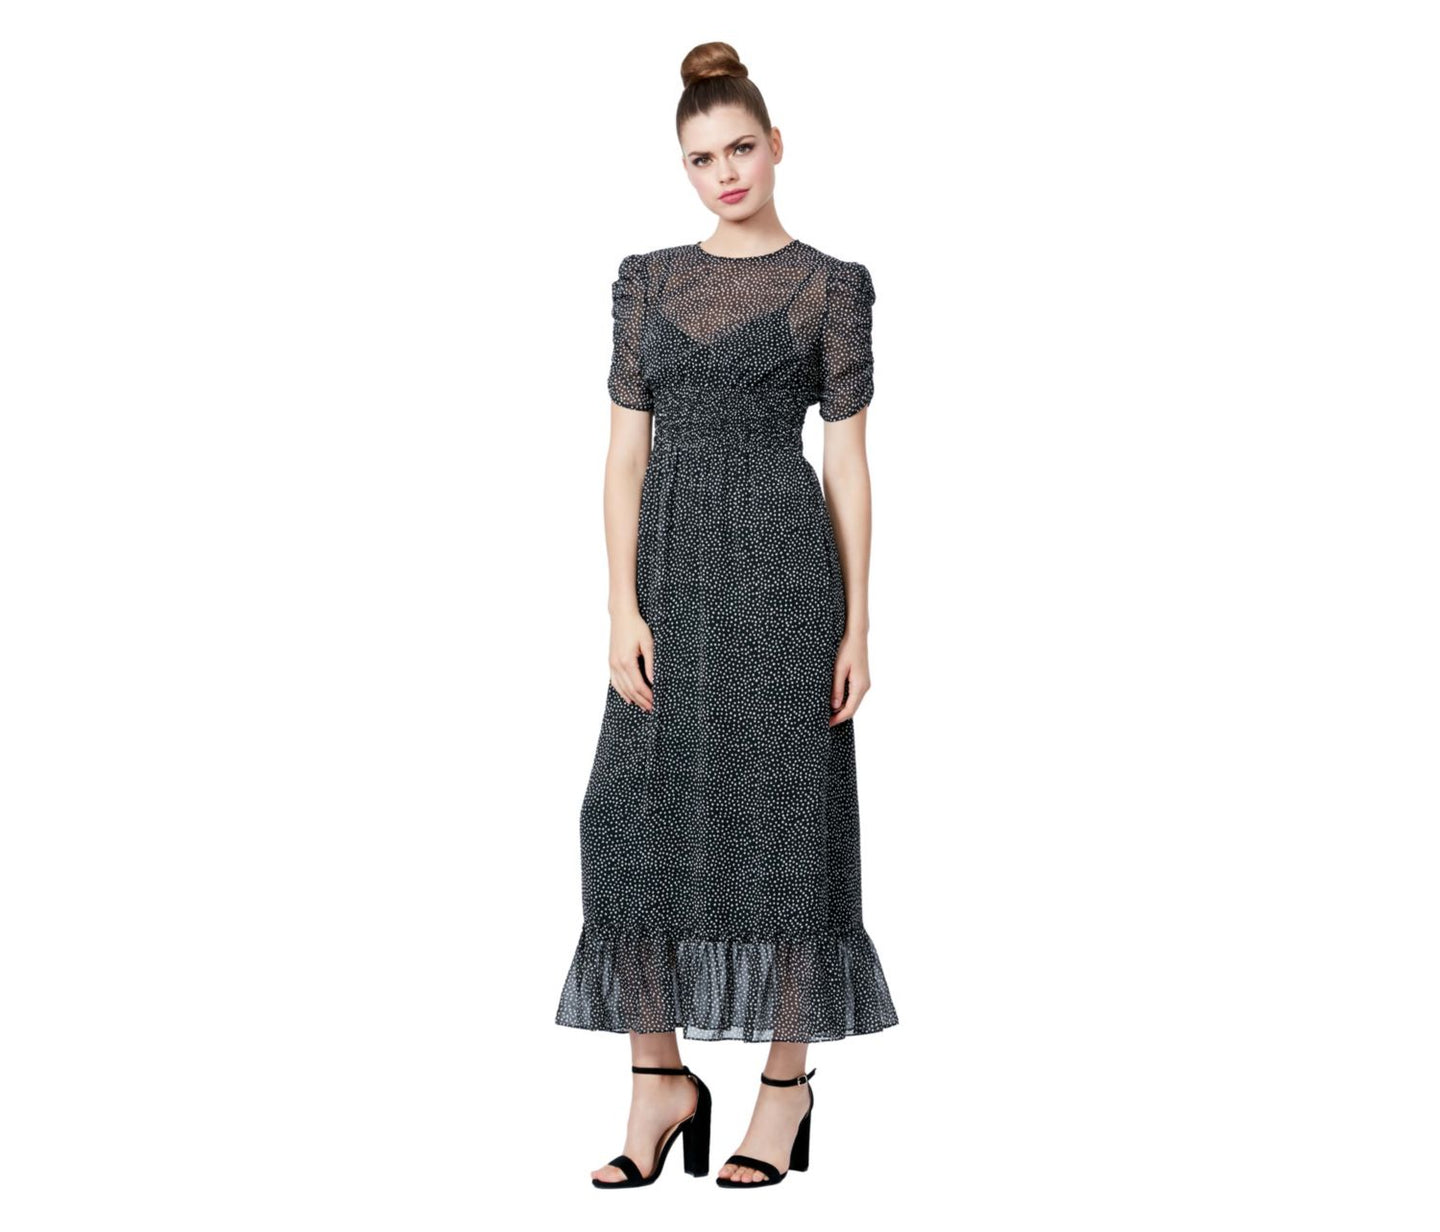 TINY DOTS RUFFLE HEM MAXI DRESS BLACK-WHITE - APPAREL - Betsey Johnson